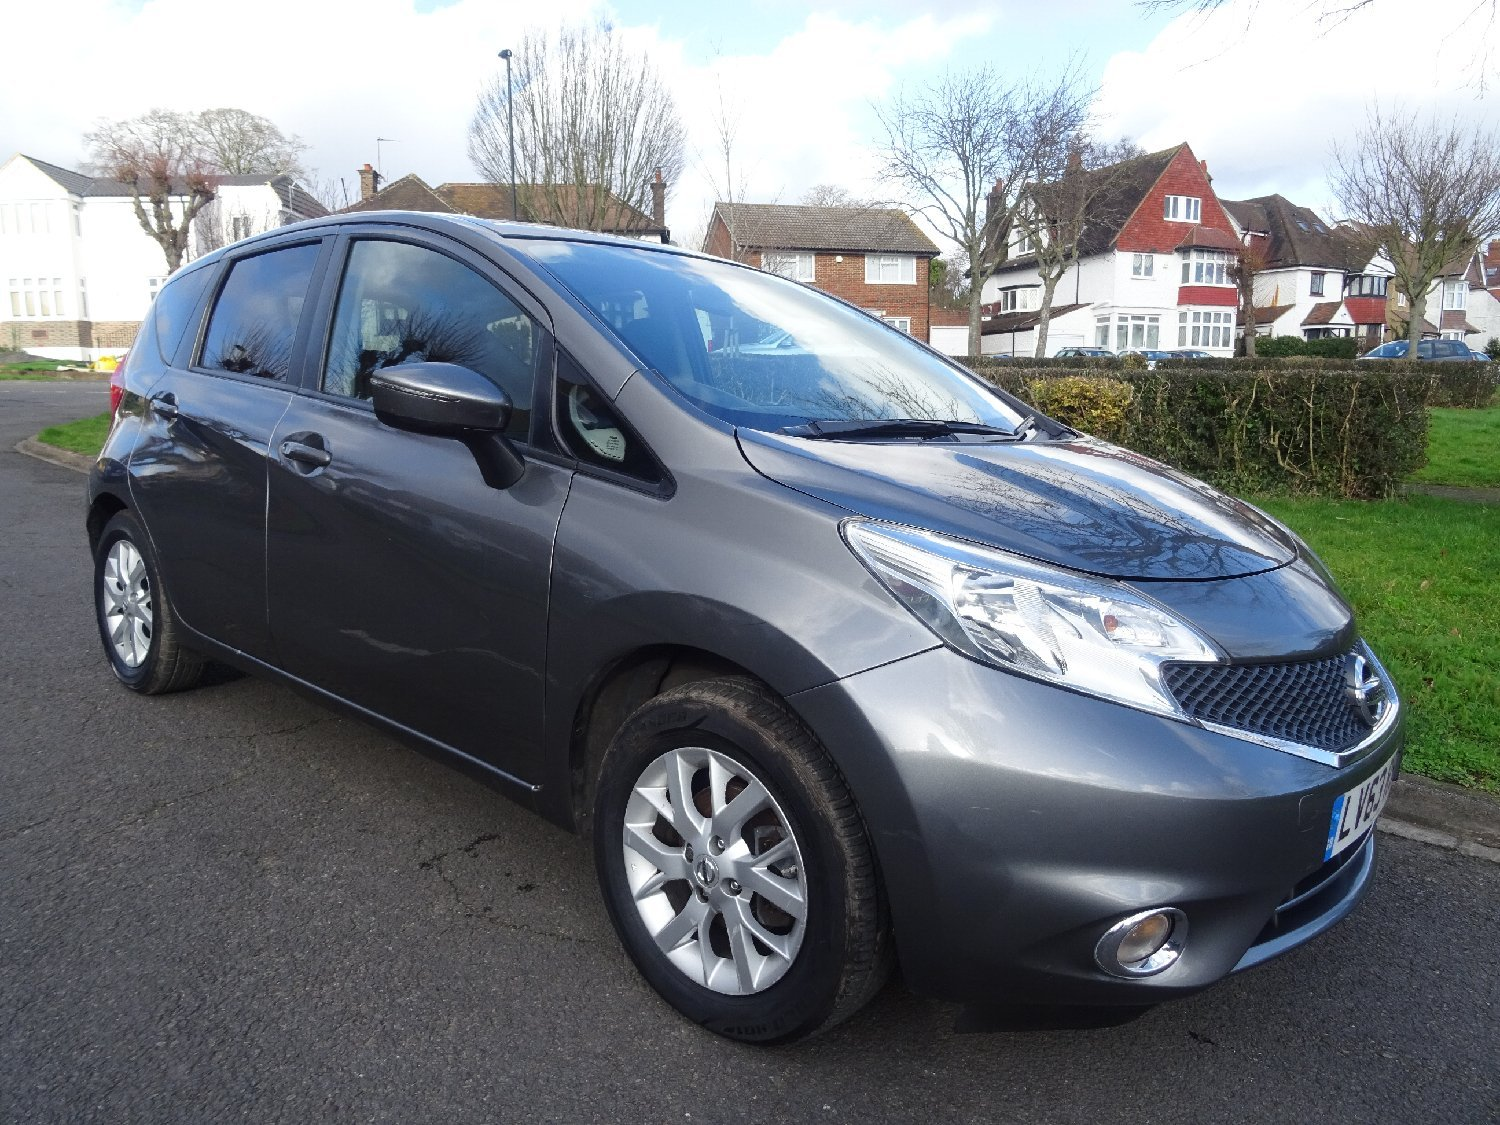 2013 Nissan Note 1.2 Acenta (80ps) (63 reg)